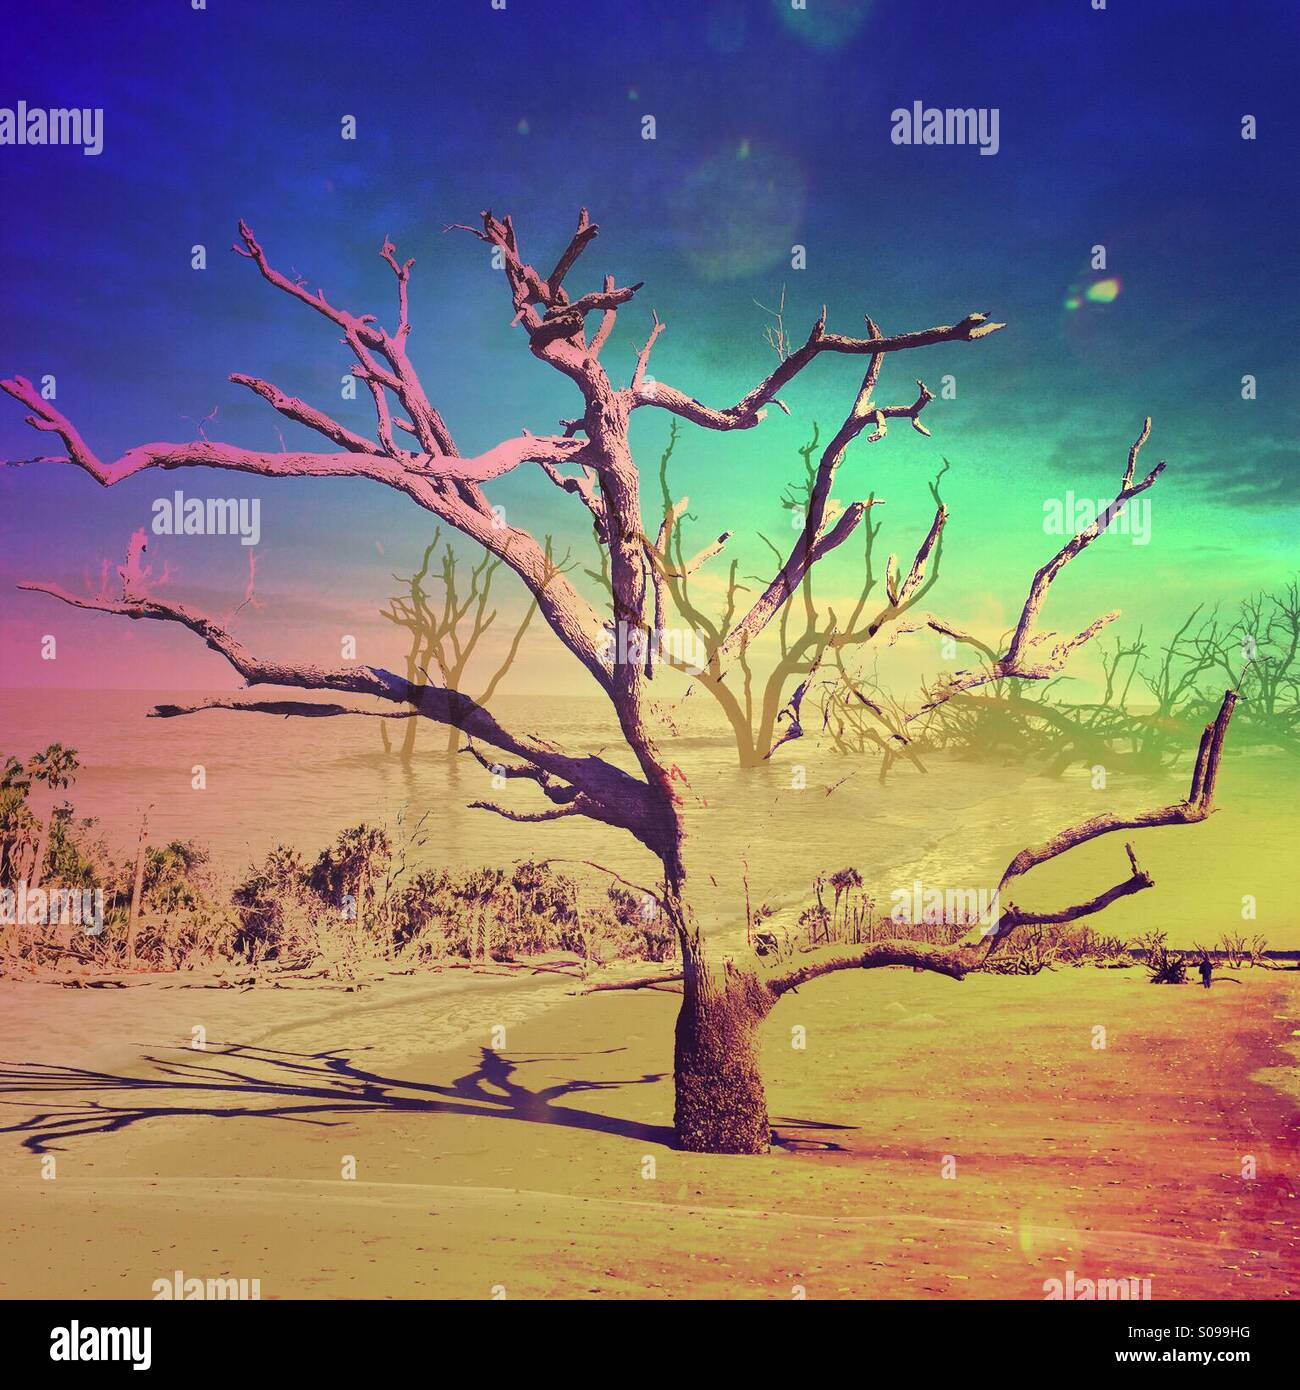 This is a double exposure of two different images of trees with a very colorful sky and Brad ground. - Stock Image